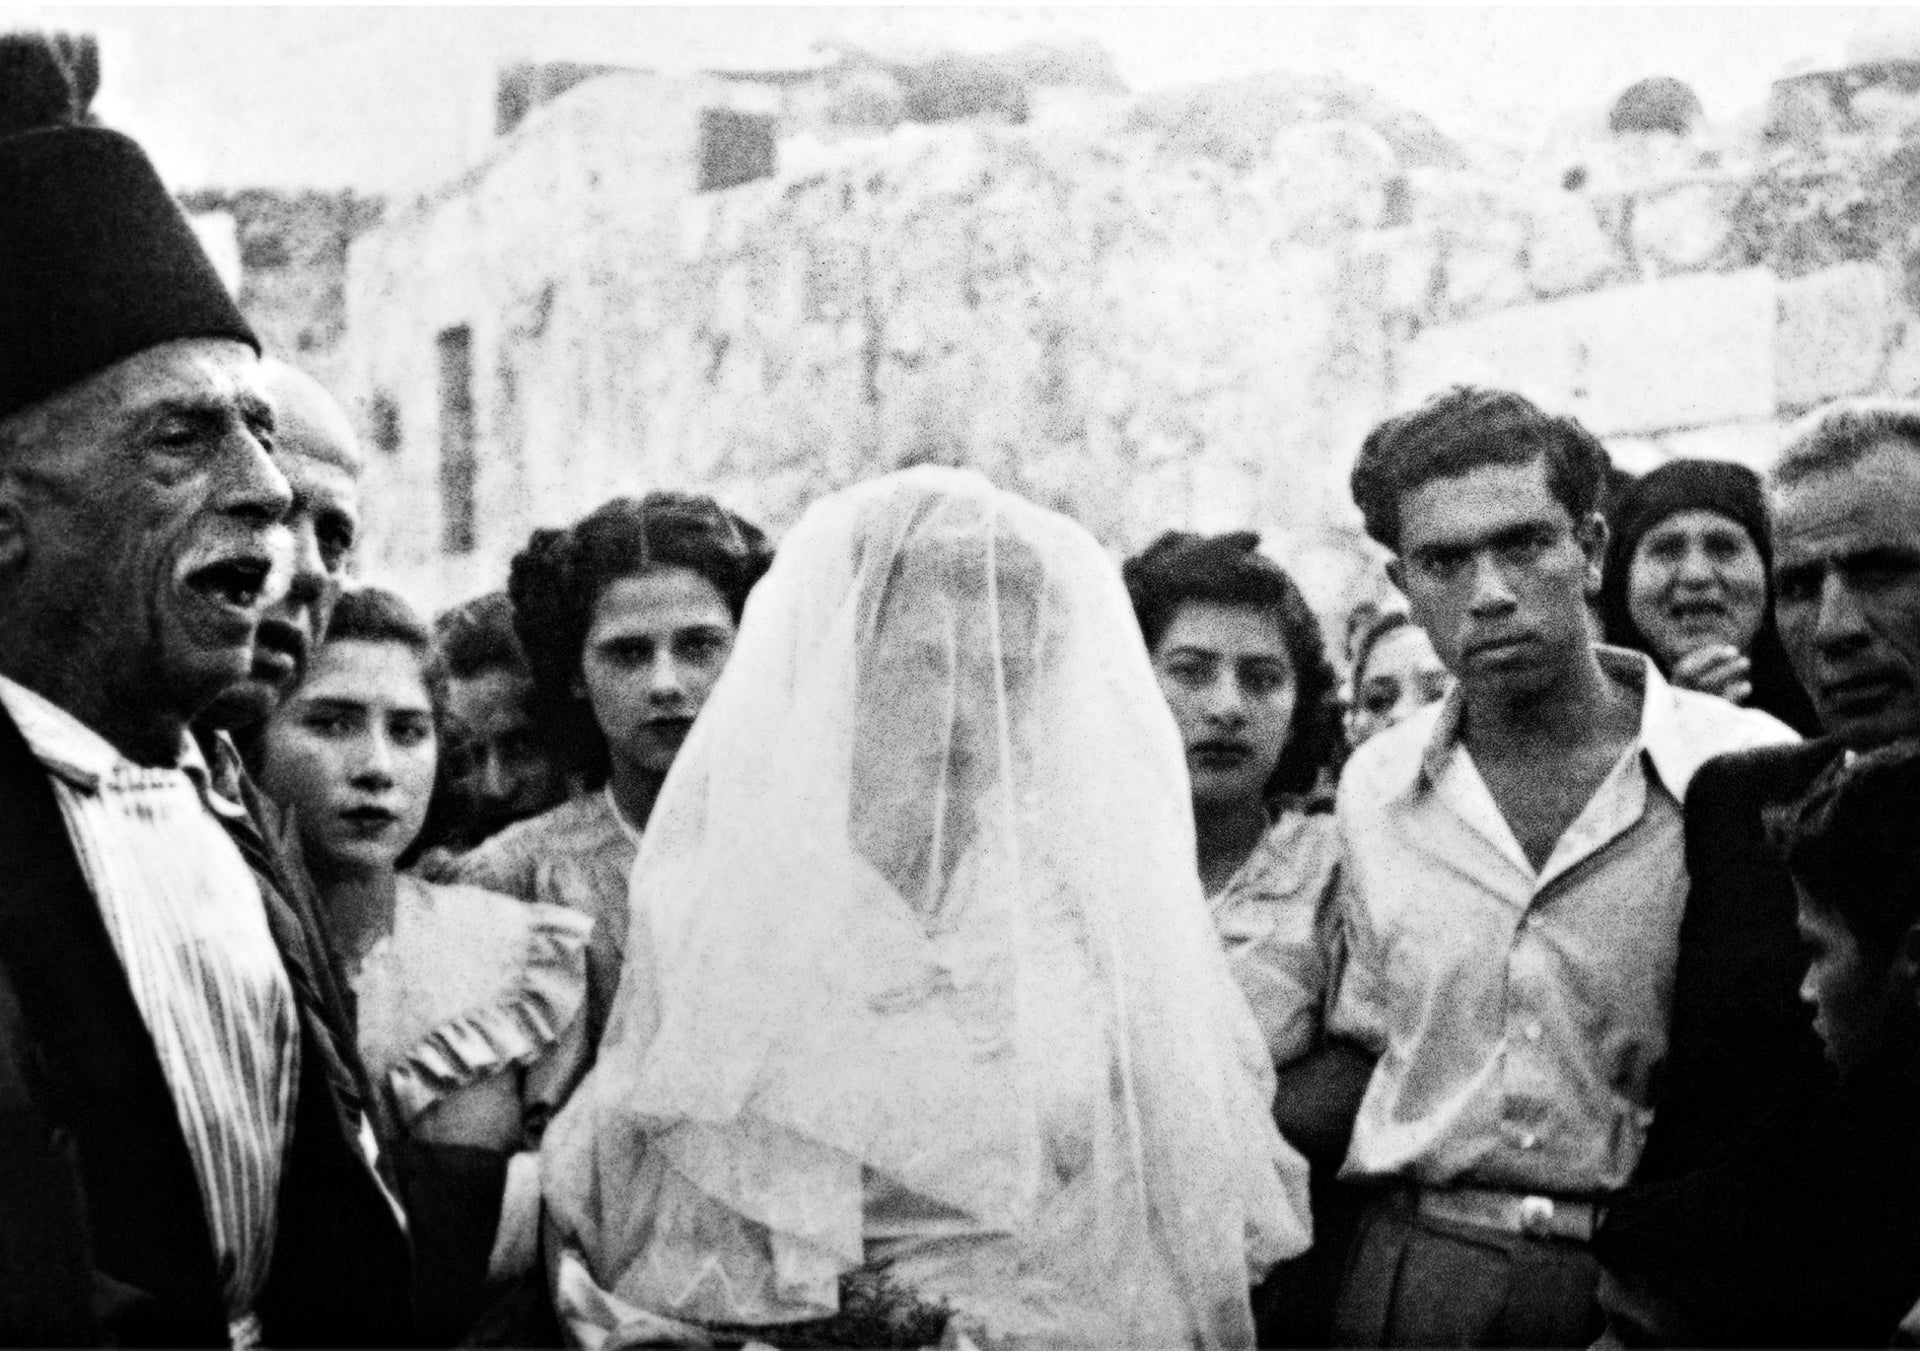 'The wedding of Yaakov and Samira, Lod 1949' by Dor Guez.